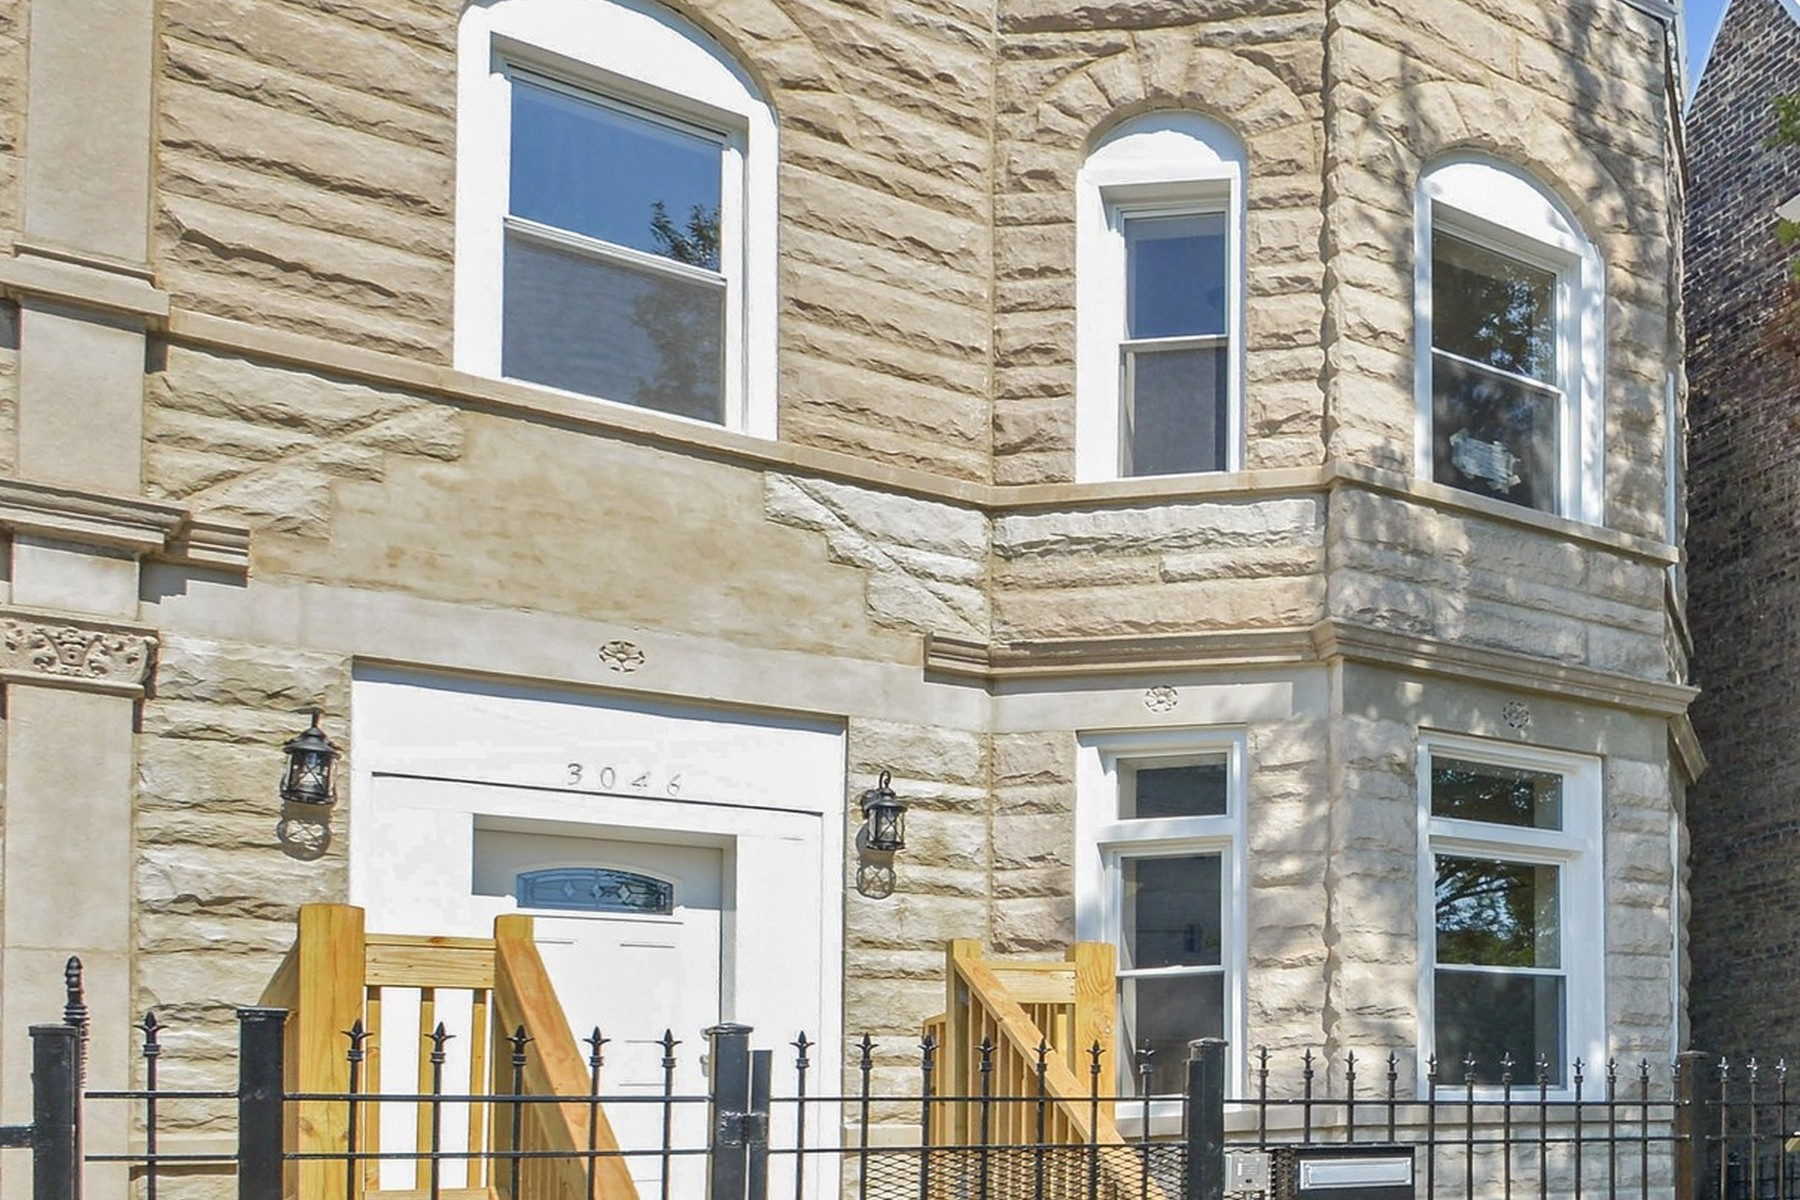 Single Family Home for Sale at Classic Chicago Greystone 3046 W Jackson Boulevard East Garfield Park, Chicago, Illinois 60612 United States